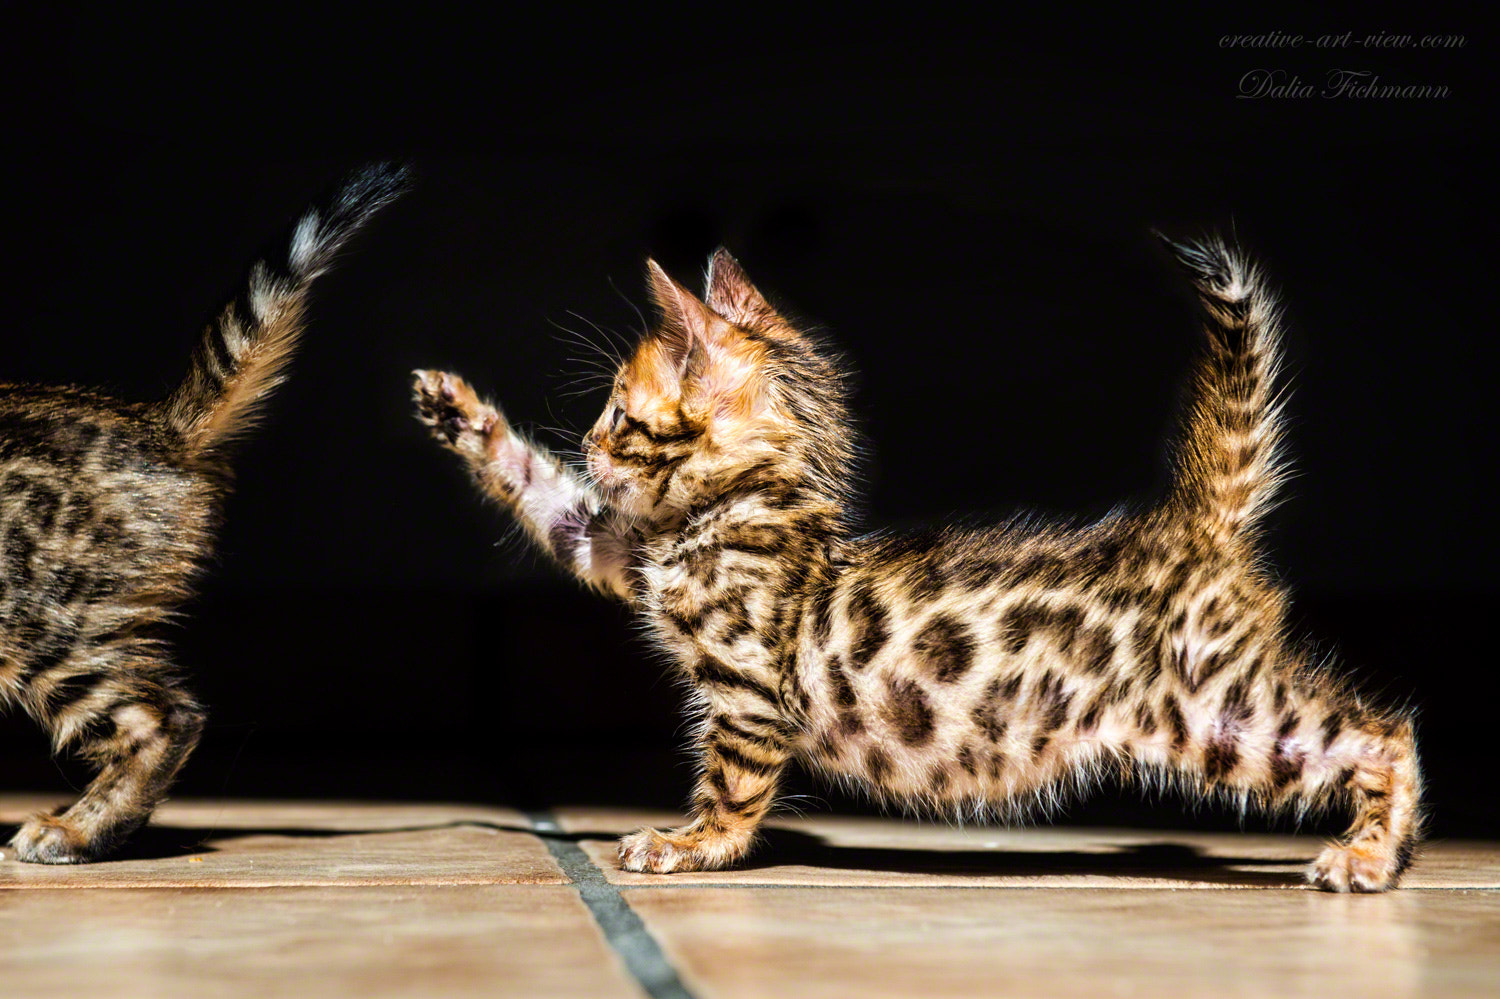 Photograph The little Leopard by Dalia Fichmann on 500px